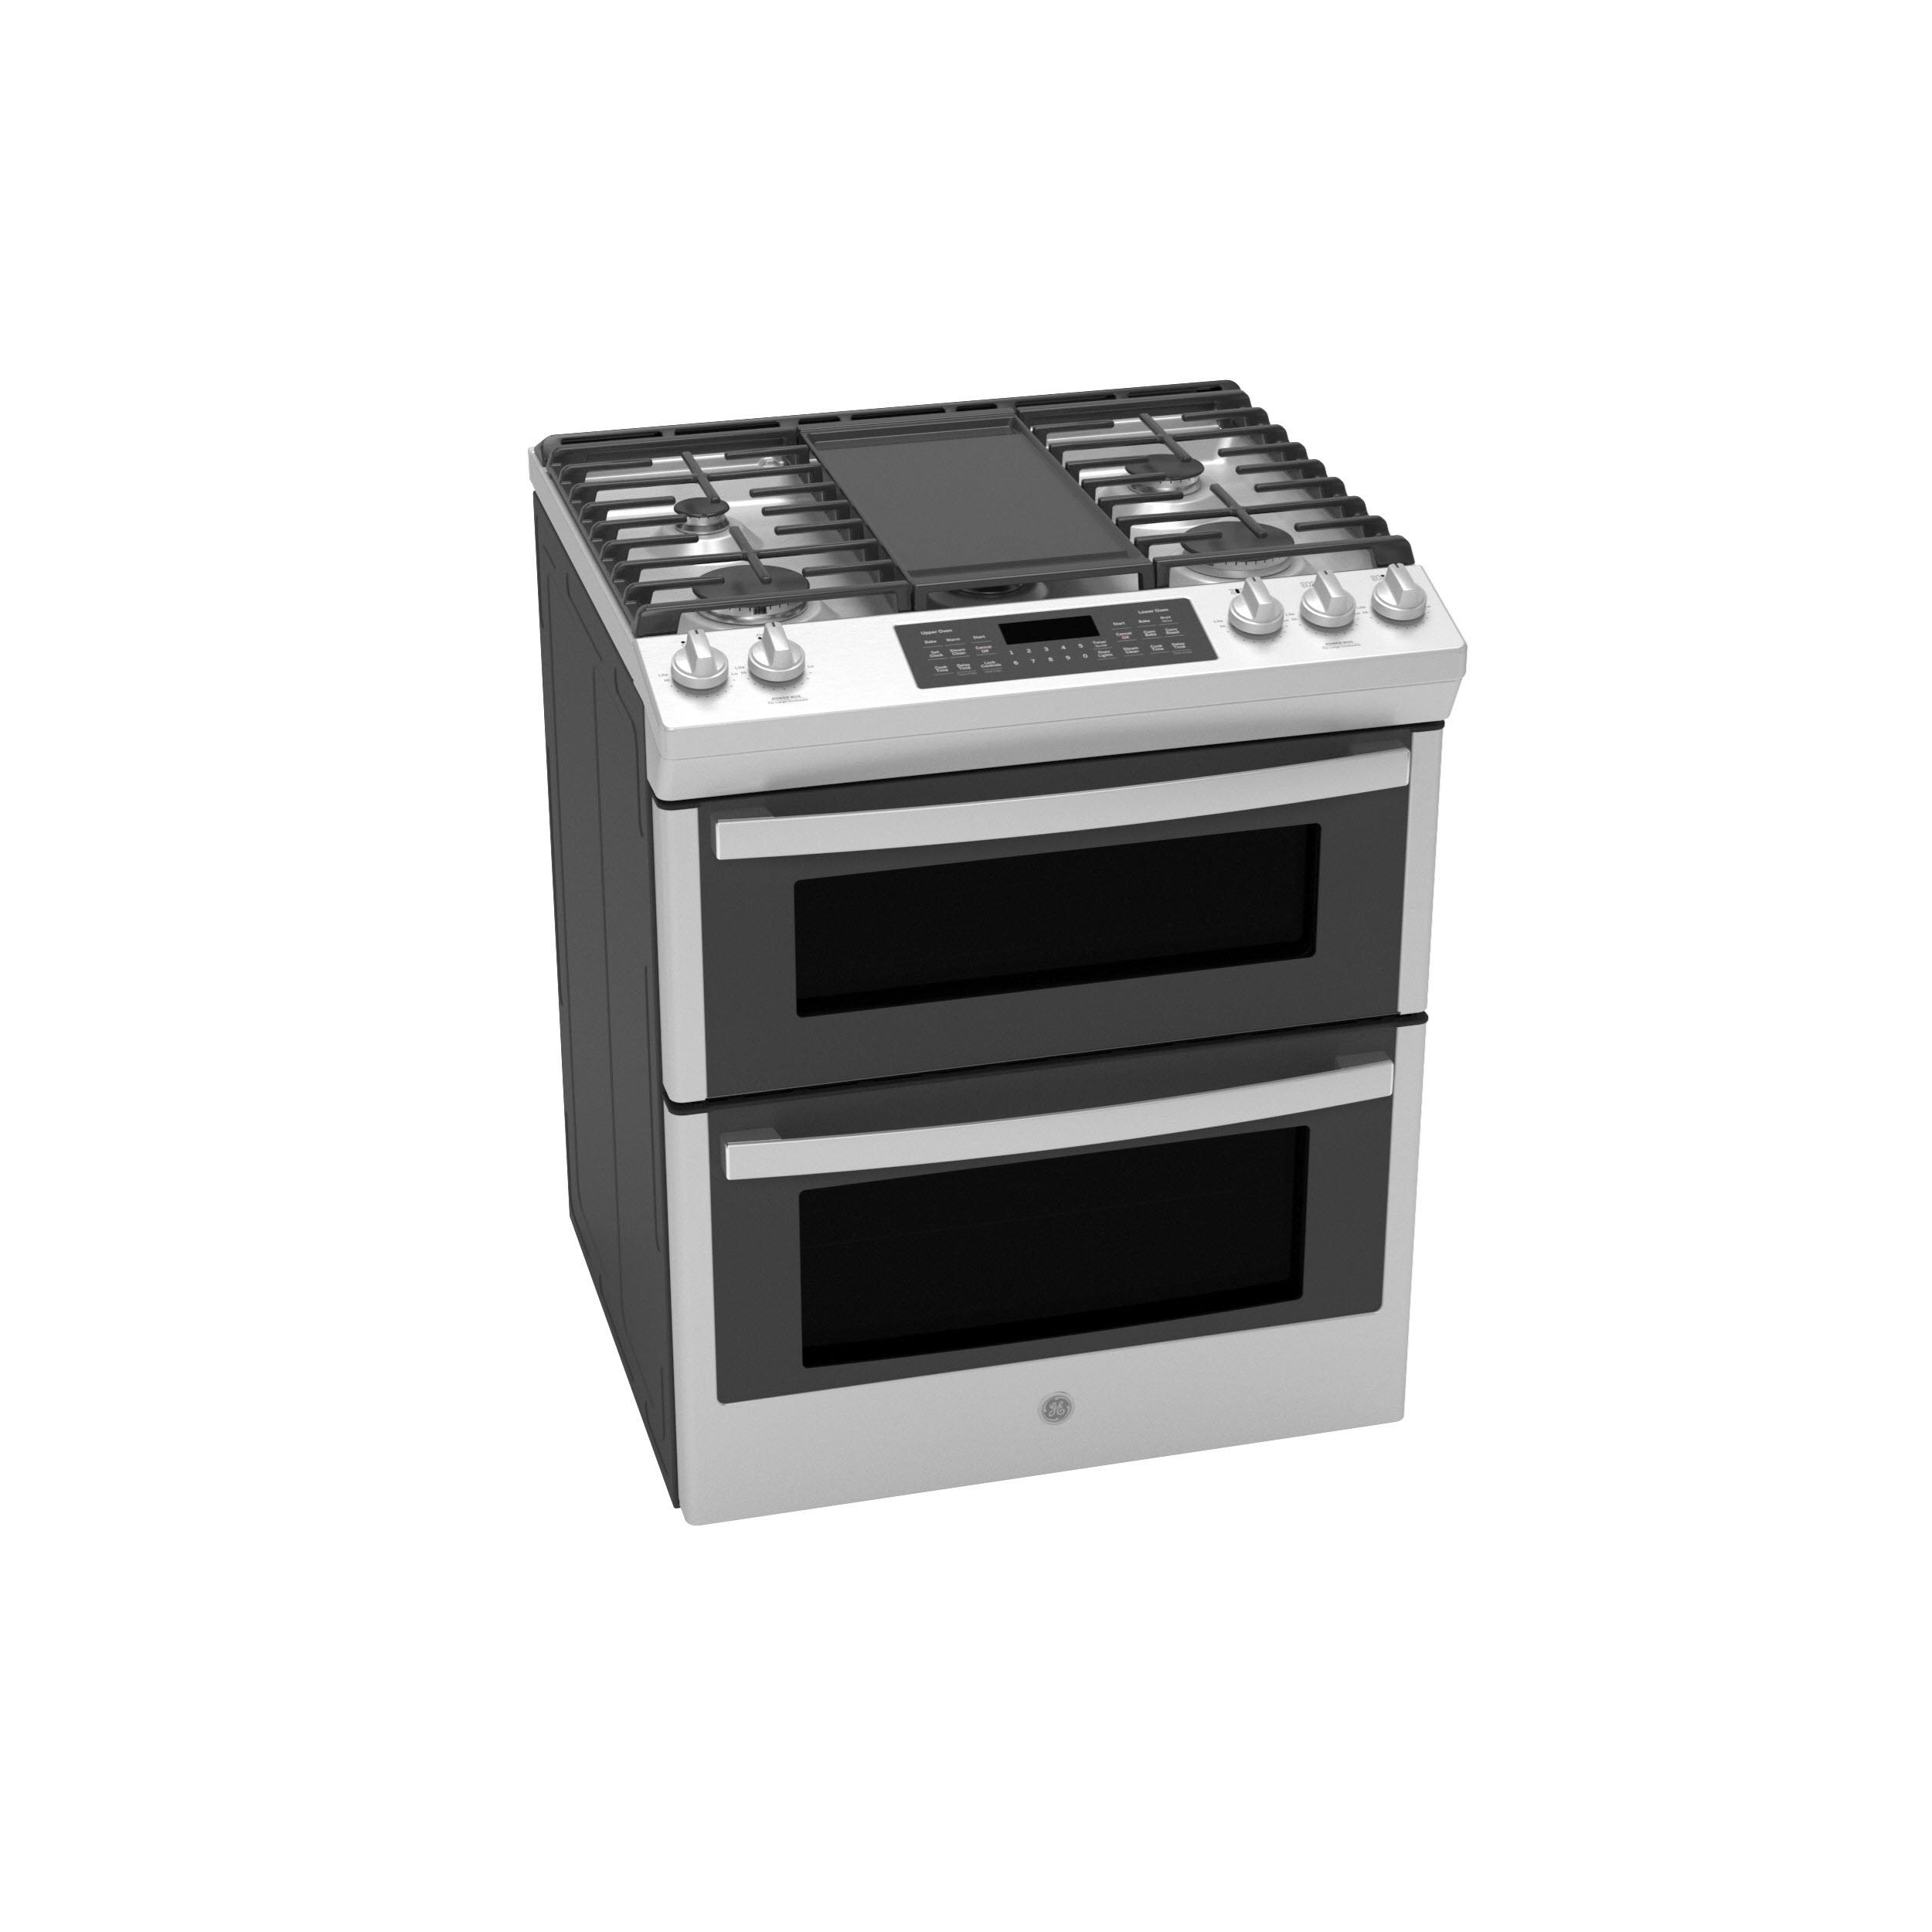 """Model: JGSS86SPSS   GE GE® 30"""" Slide-In Front Control Gas Double Oven Range"""